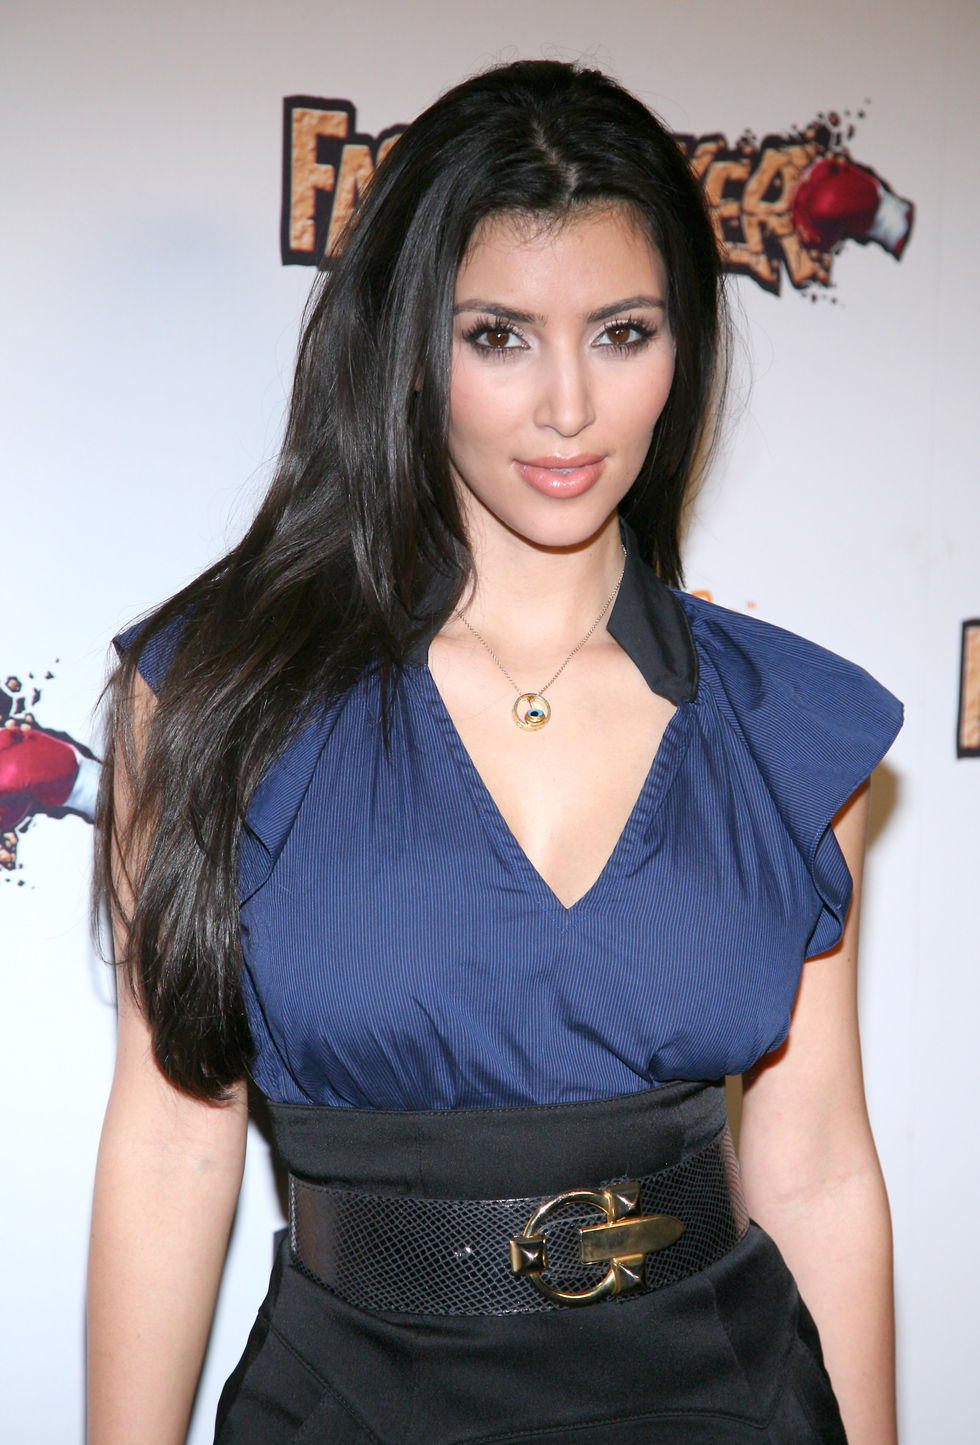 kim-kardashian-ea-sports-freestyle-launch-for-facebreaker-in-hollywood-01